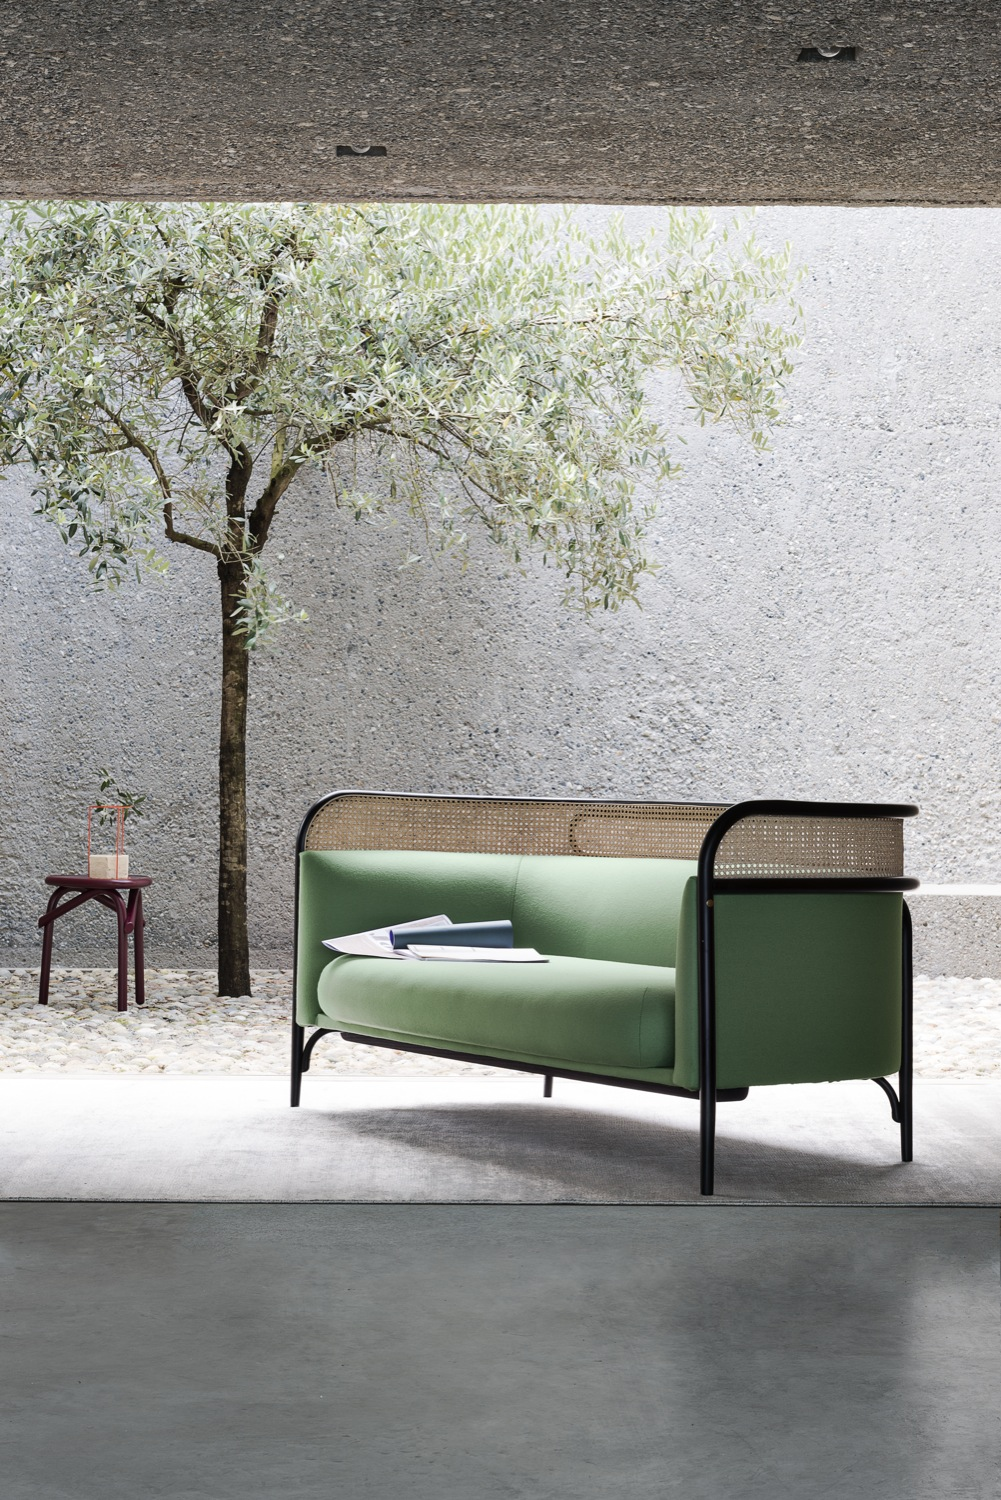 Targa sofa By GamFratesi for Gebrüder Thonet Vienna | Flodeau.com